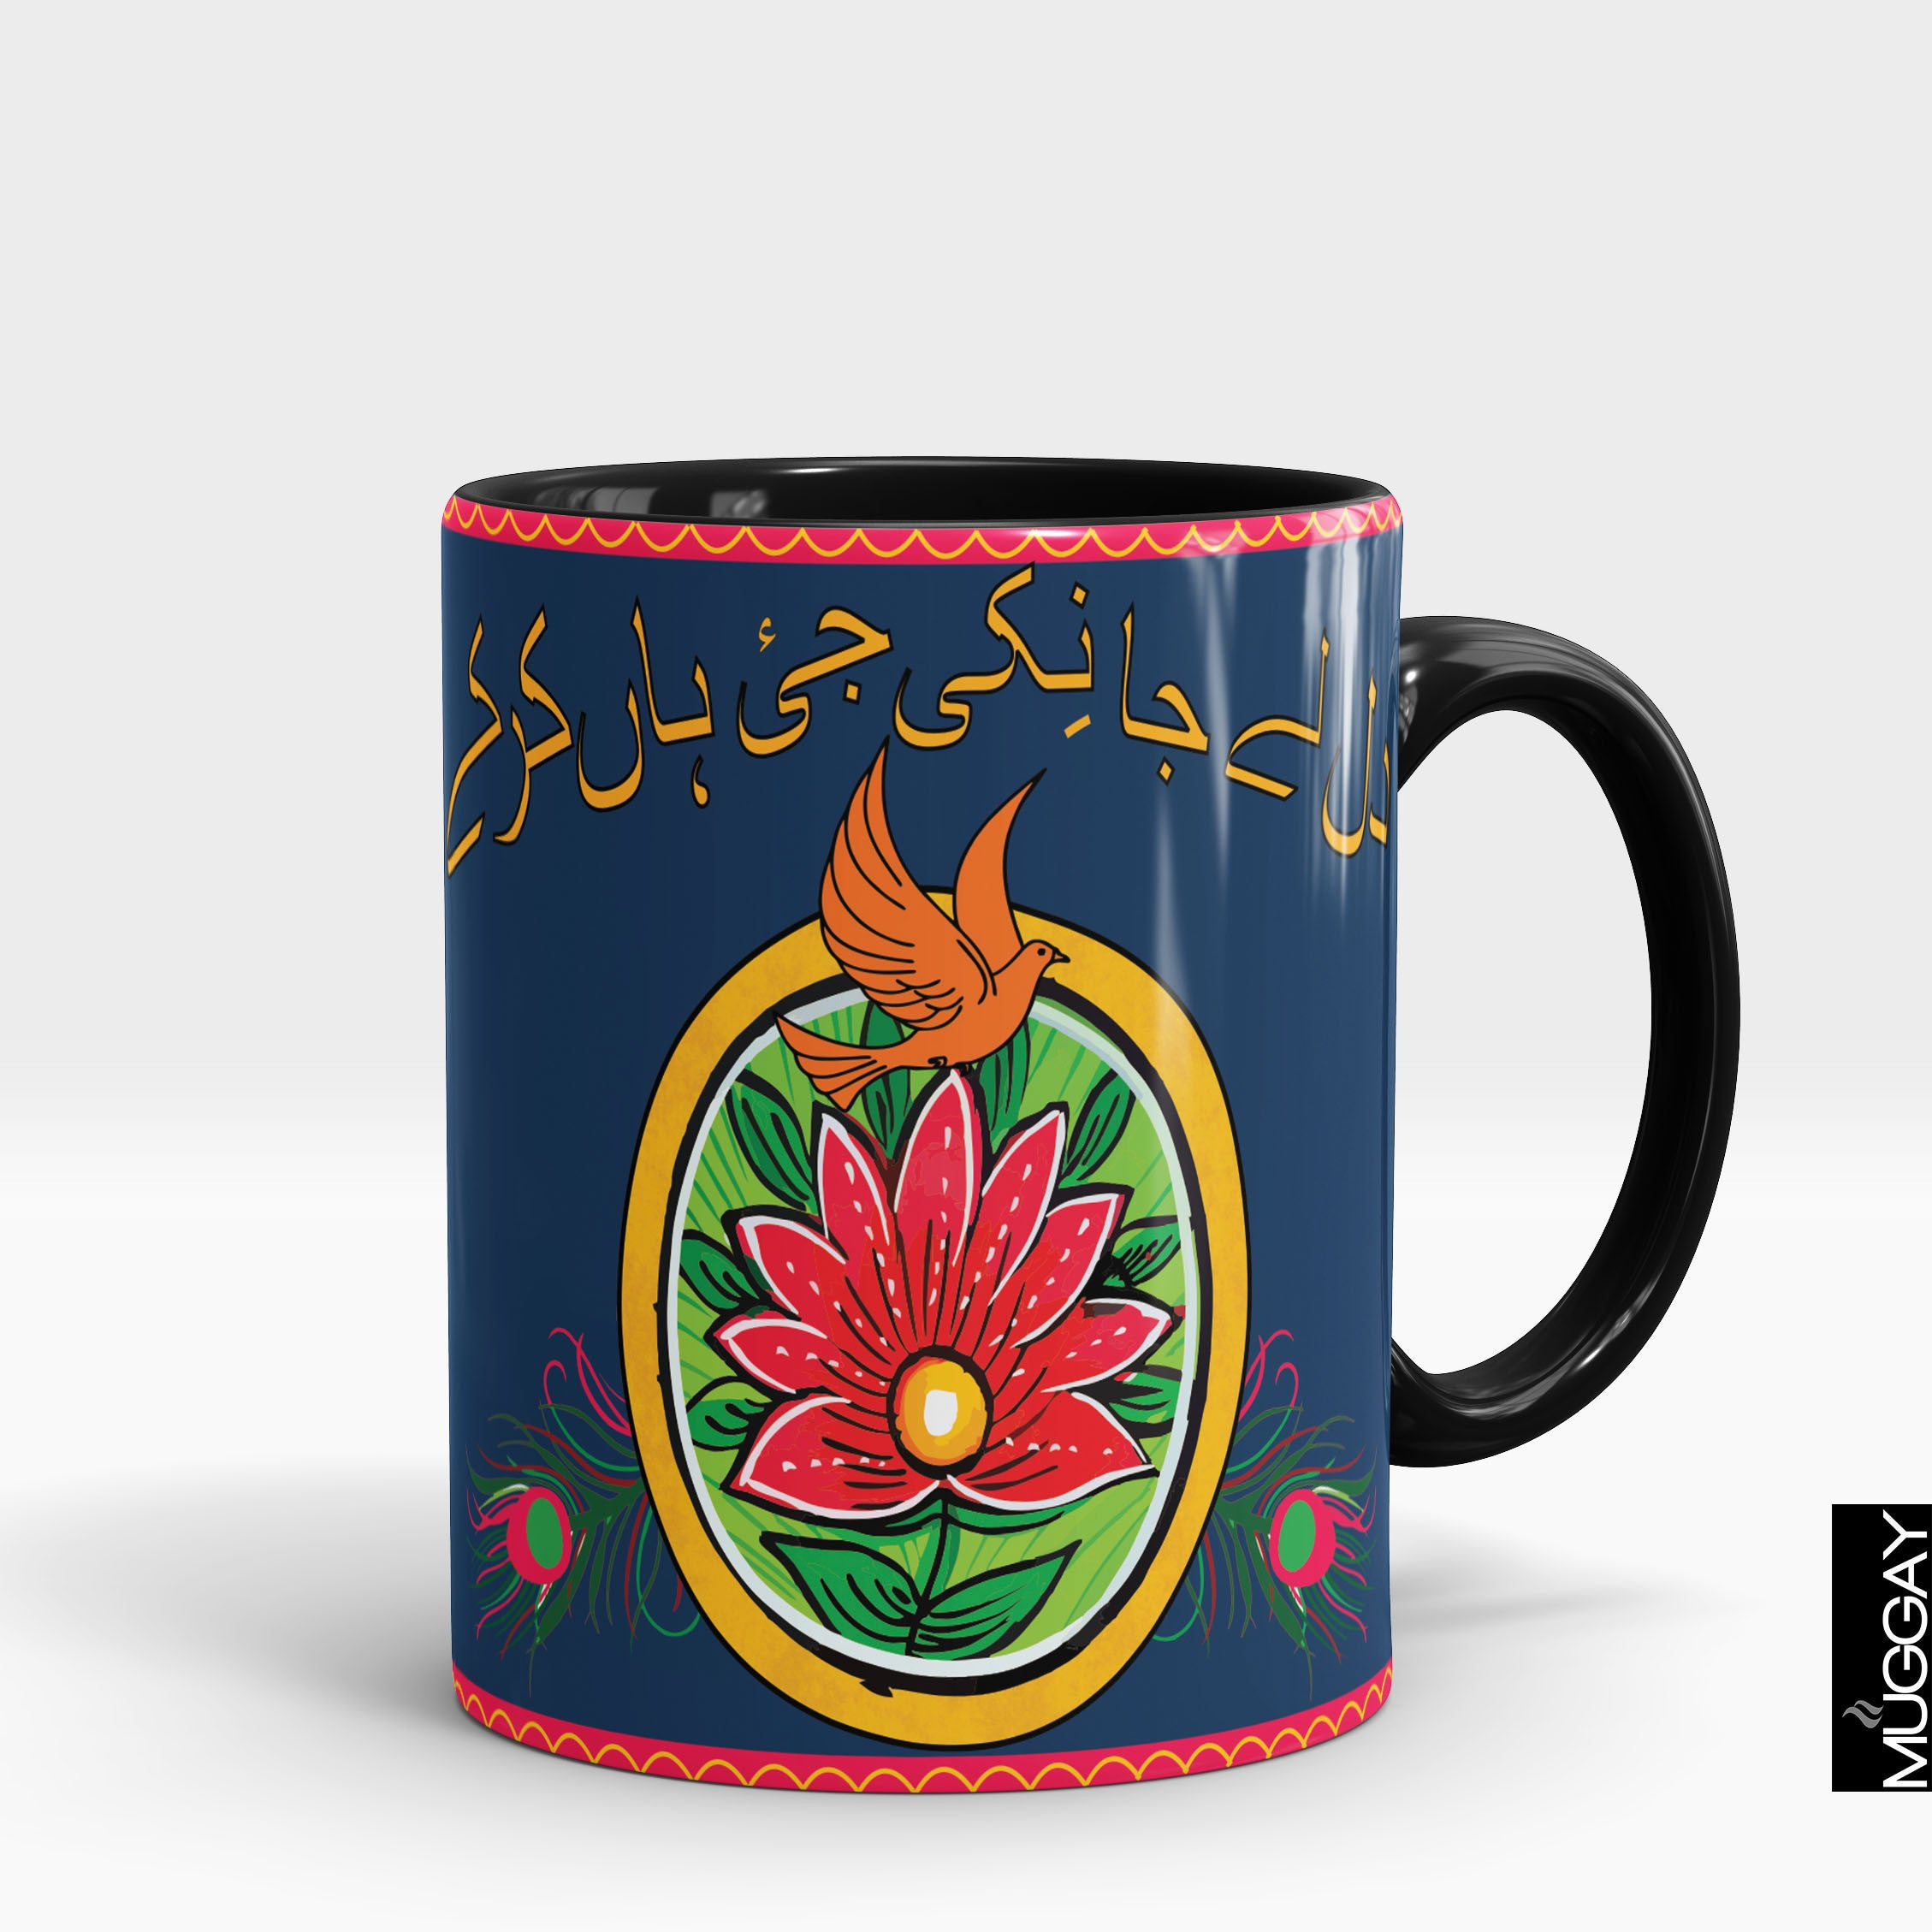 Desi funny Mugs3 - Muggay.com - Mugs - Printing shop - truck Art mugs - Mug printing - Customized printing - Digital printing - Muggay